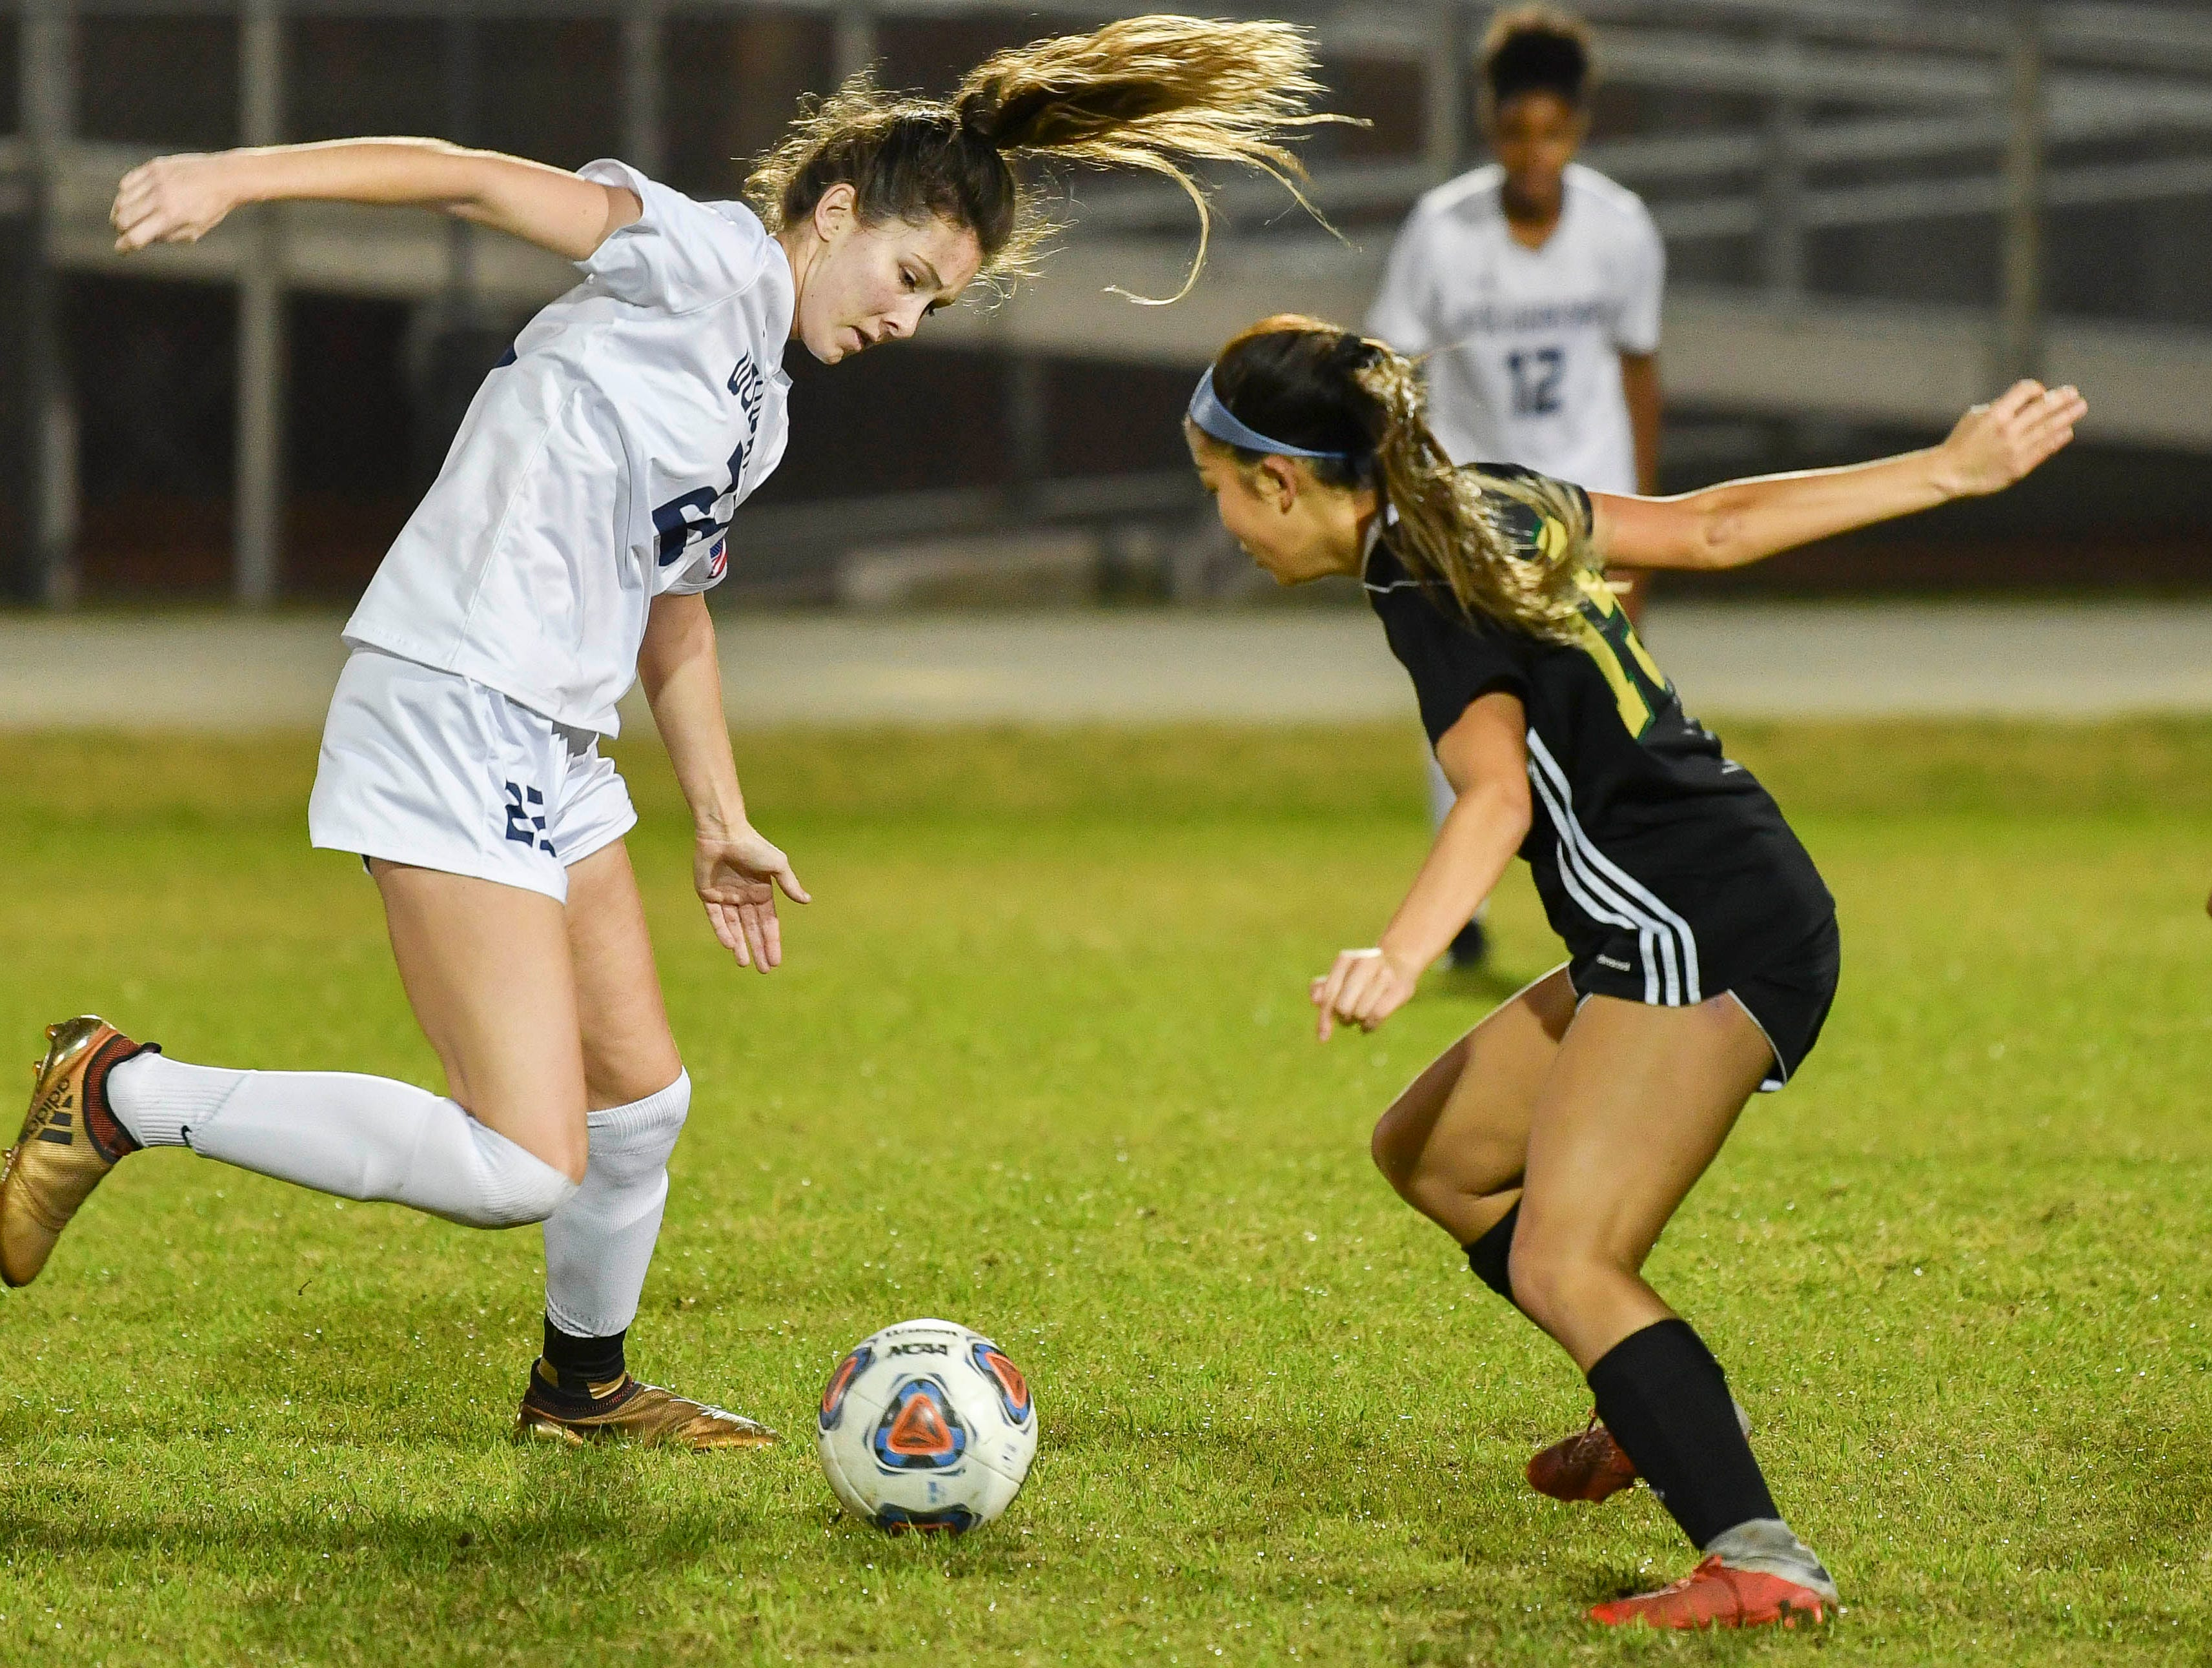 Bryce Brozovich of Windermere battles with Viera's Caroline Boston during Tuesday's Regional Quarterfinal game at Viera High School